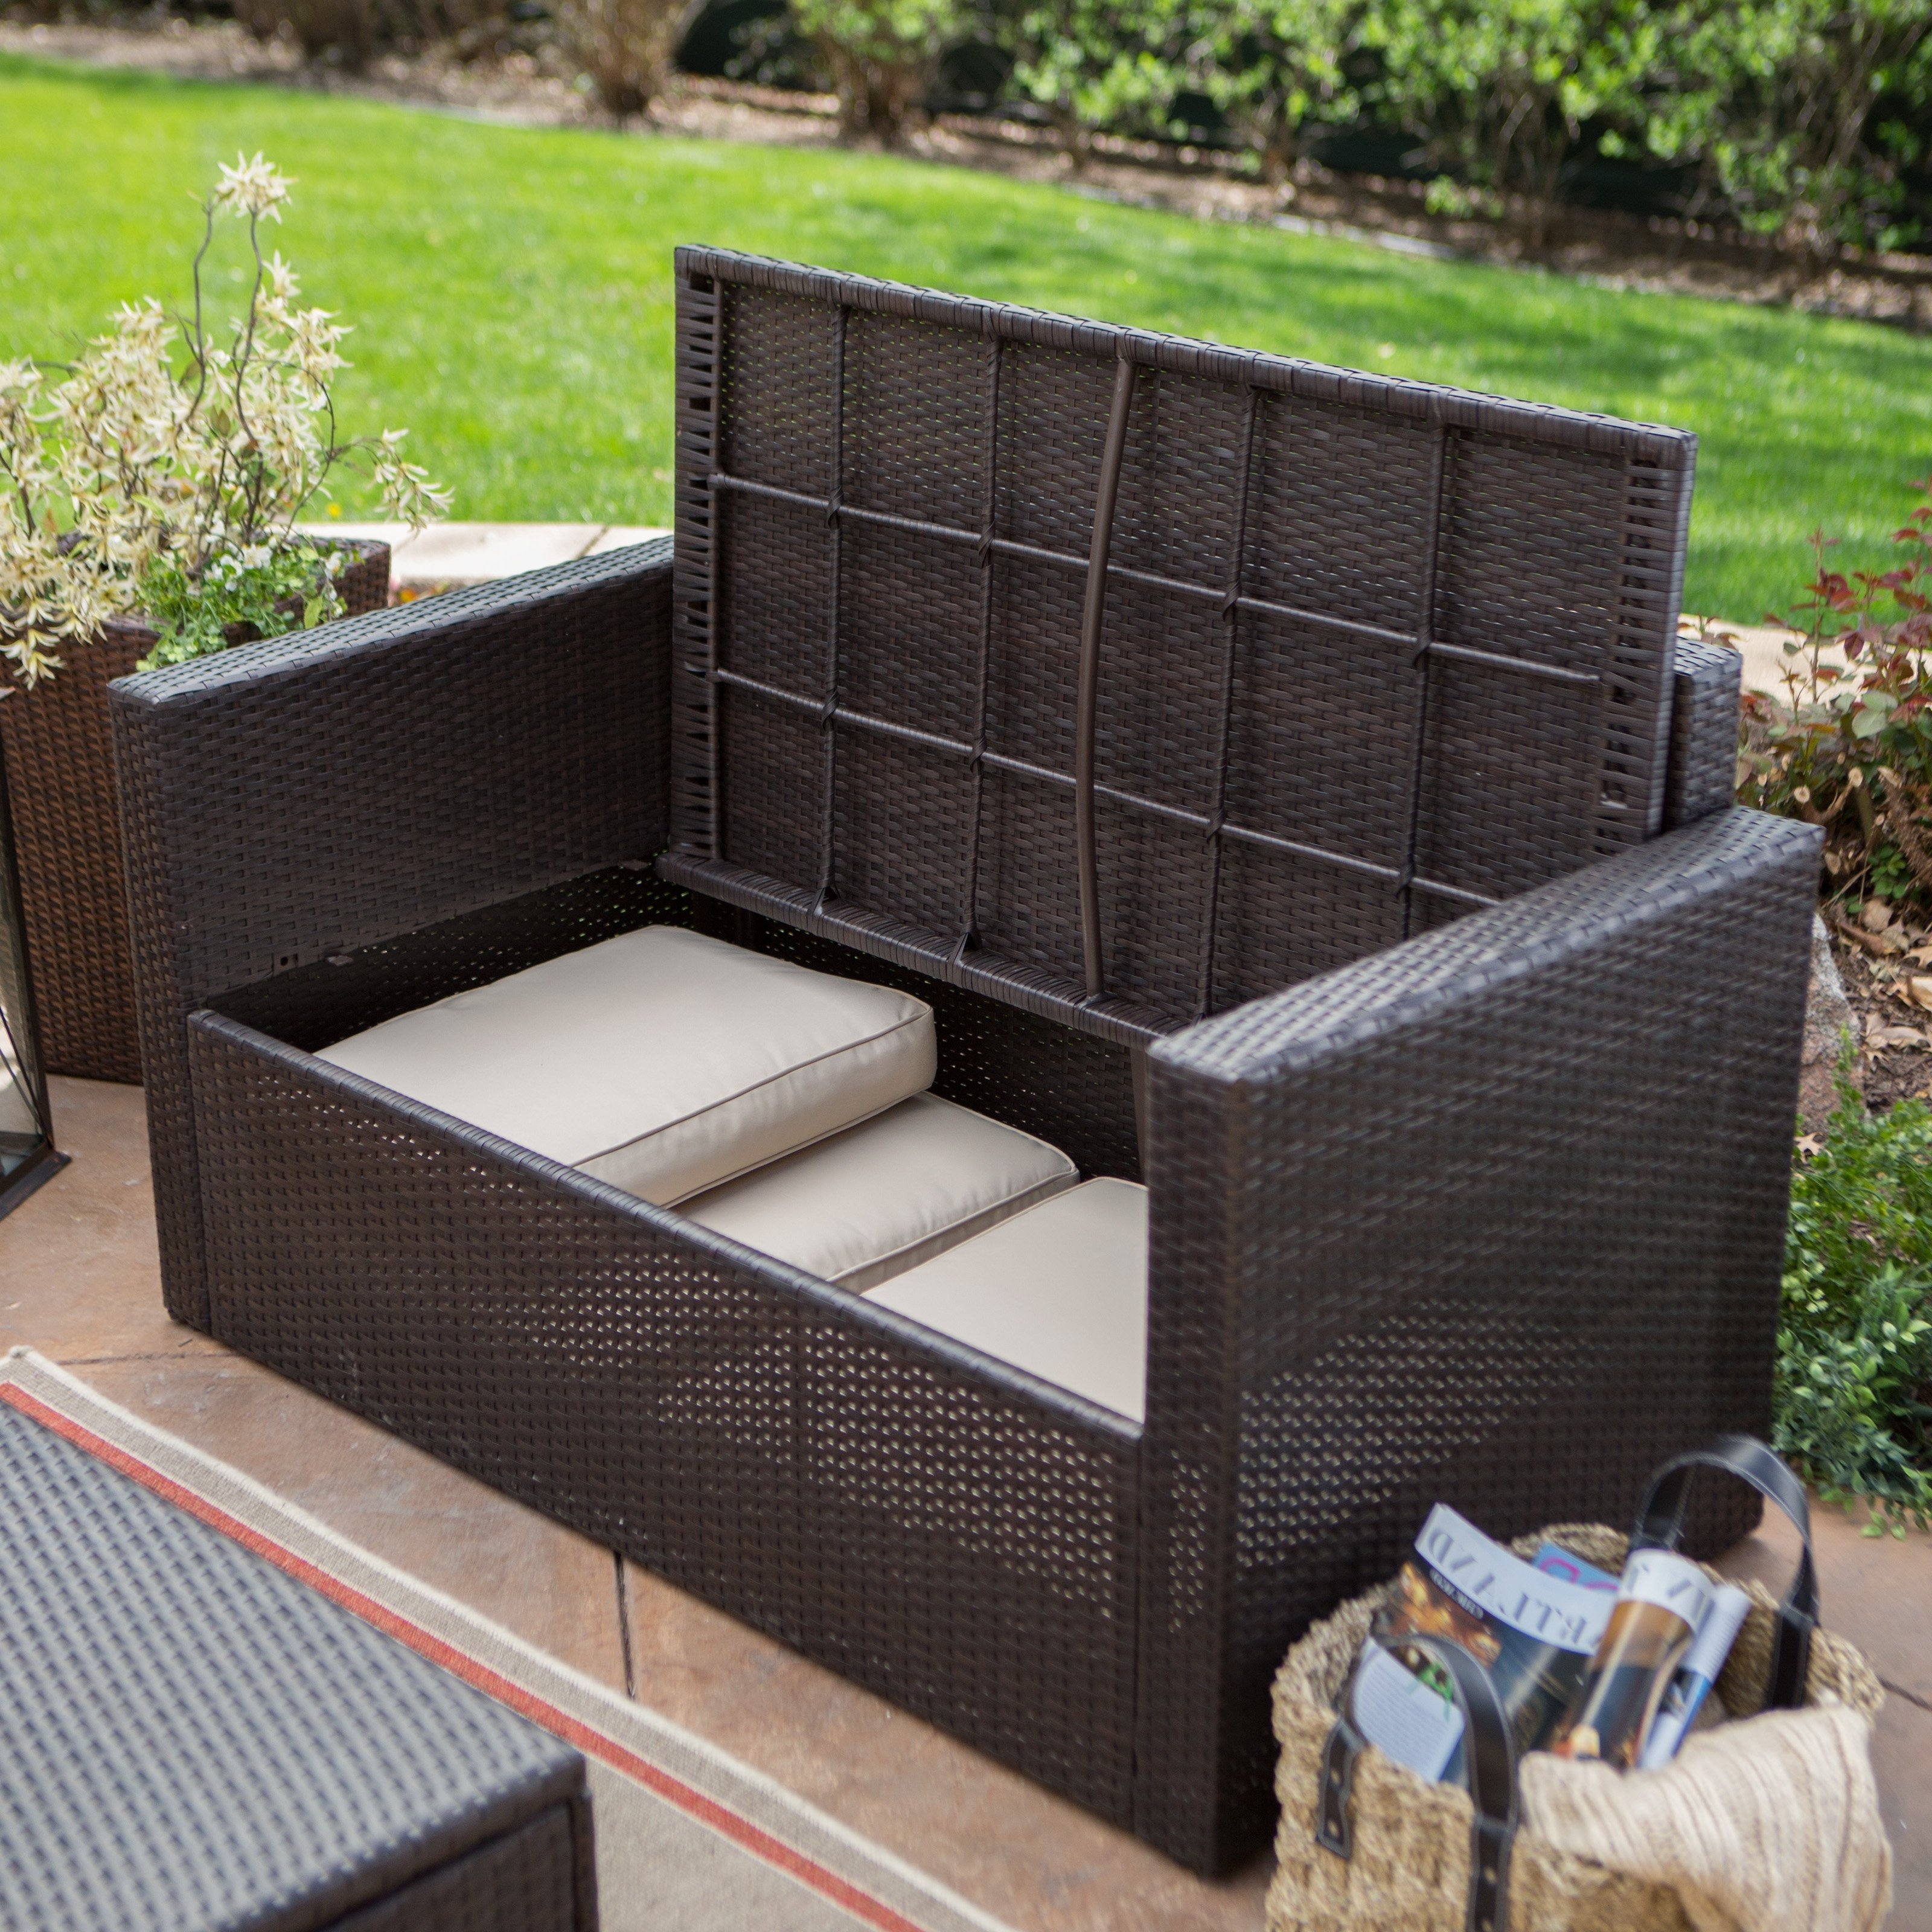 Patio Conversation Sets With Storage For Most Current Coral Coast Berea Outdoor Wicker Storage Loveseat With Cushions (View 9 of 15)